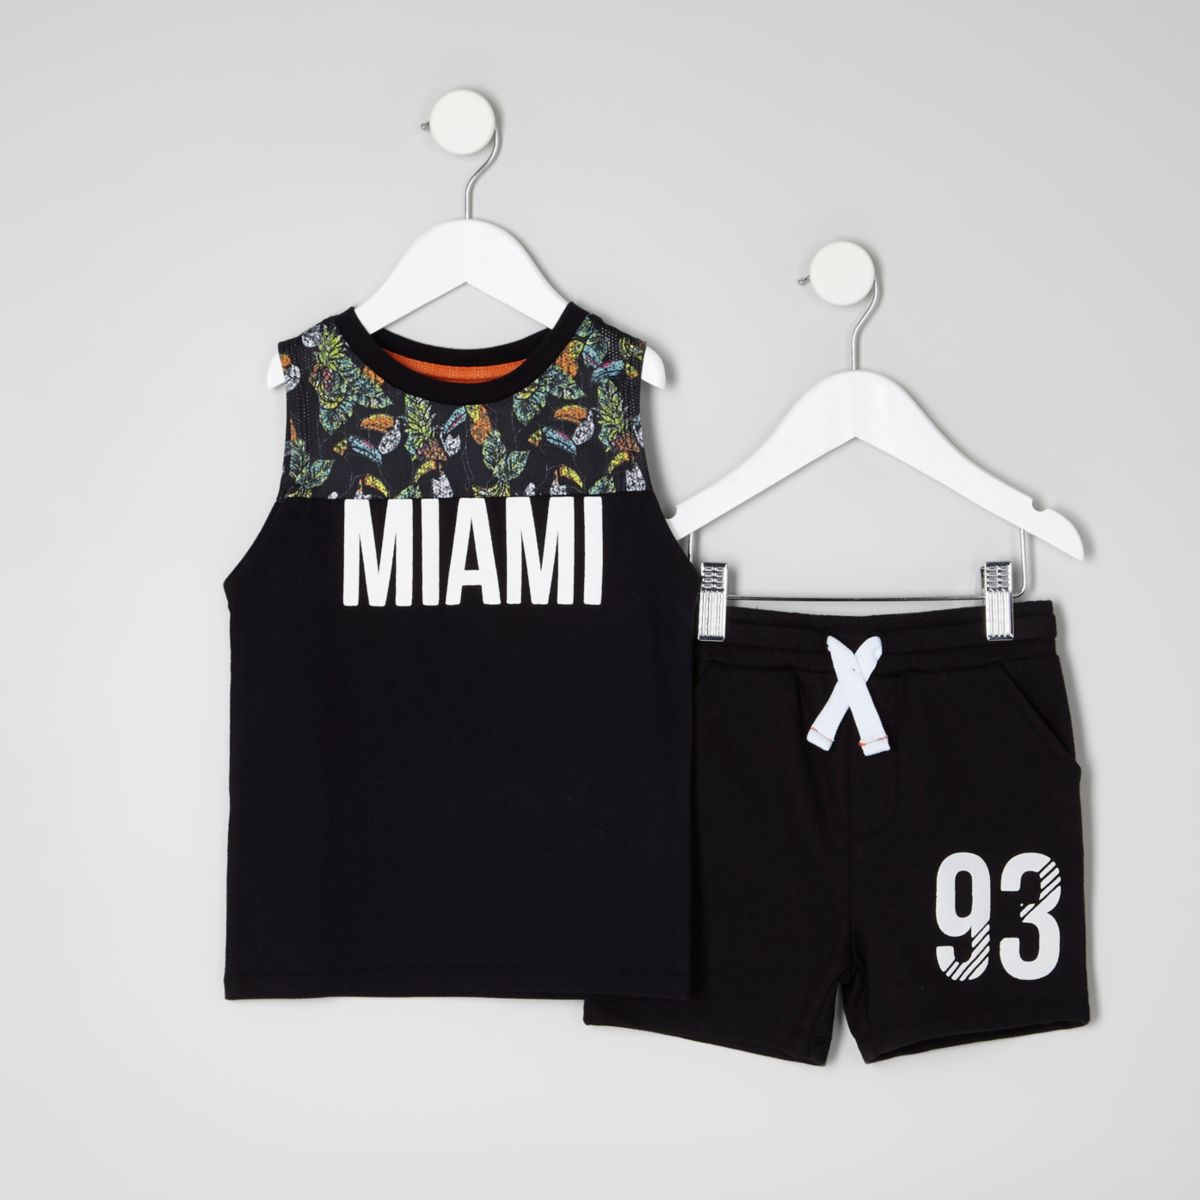 Mini boys black print vest and shorts outfit